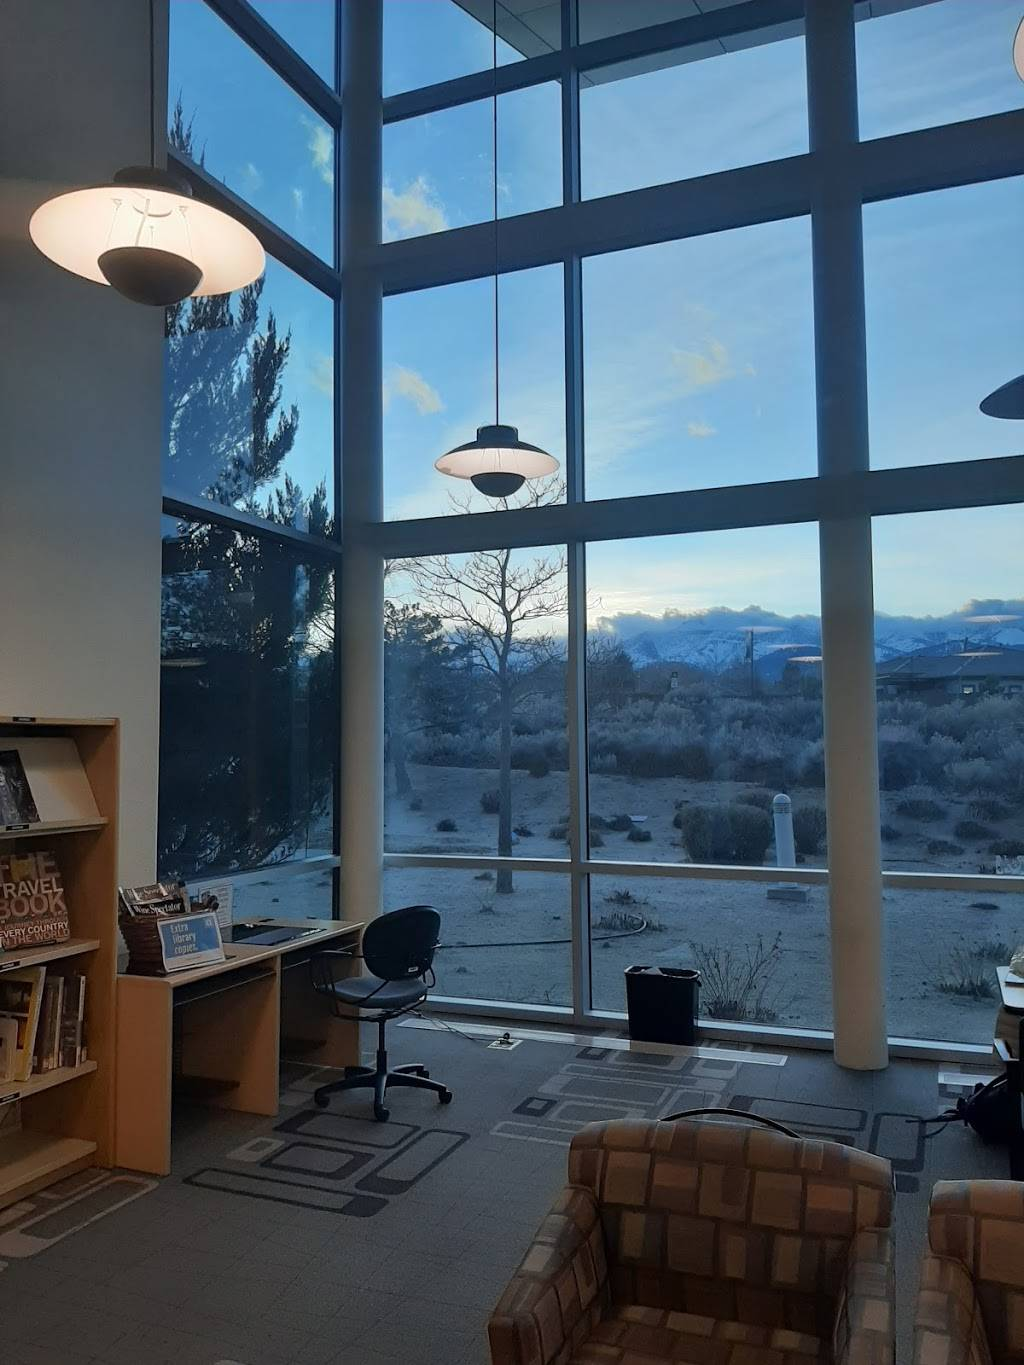 South Valleys Library - library  | Photo 2 of 9 | Address: 15650 Wedge Pkwy, Reno, NV 89511, USA | Phone: (775) 851-5190